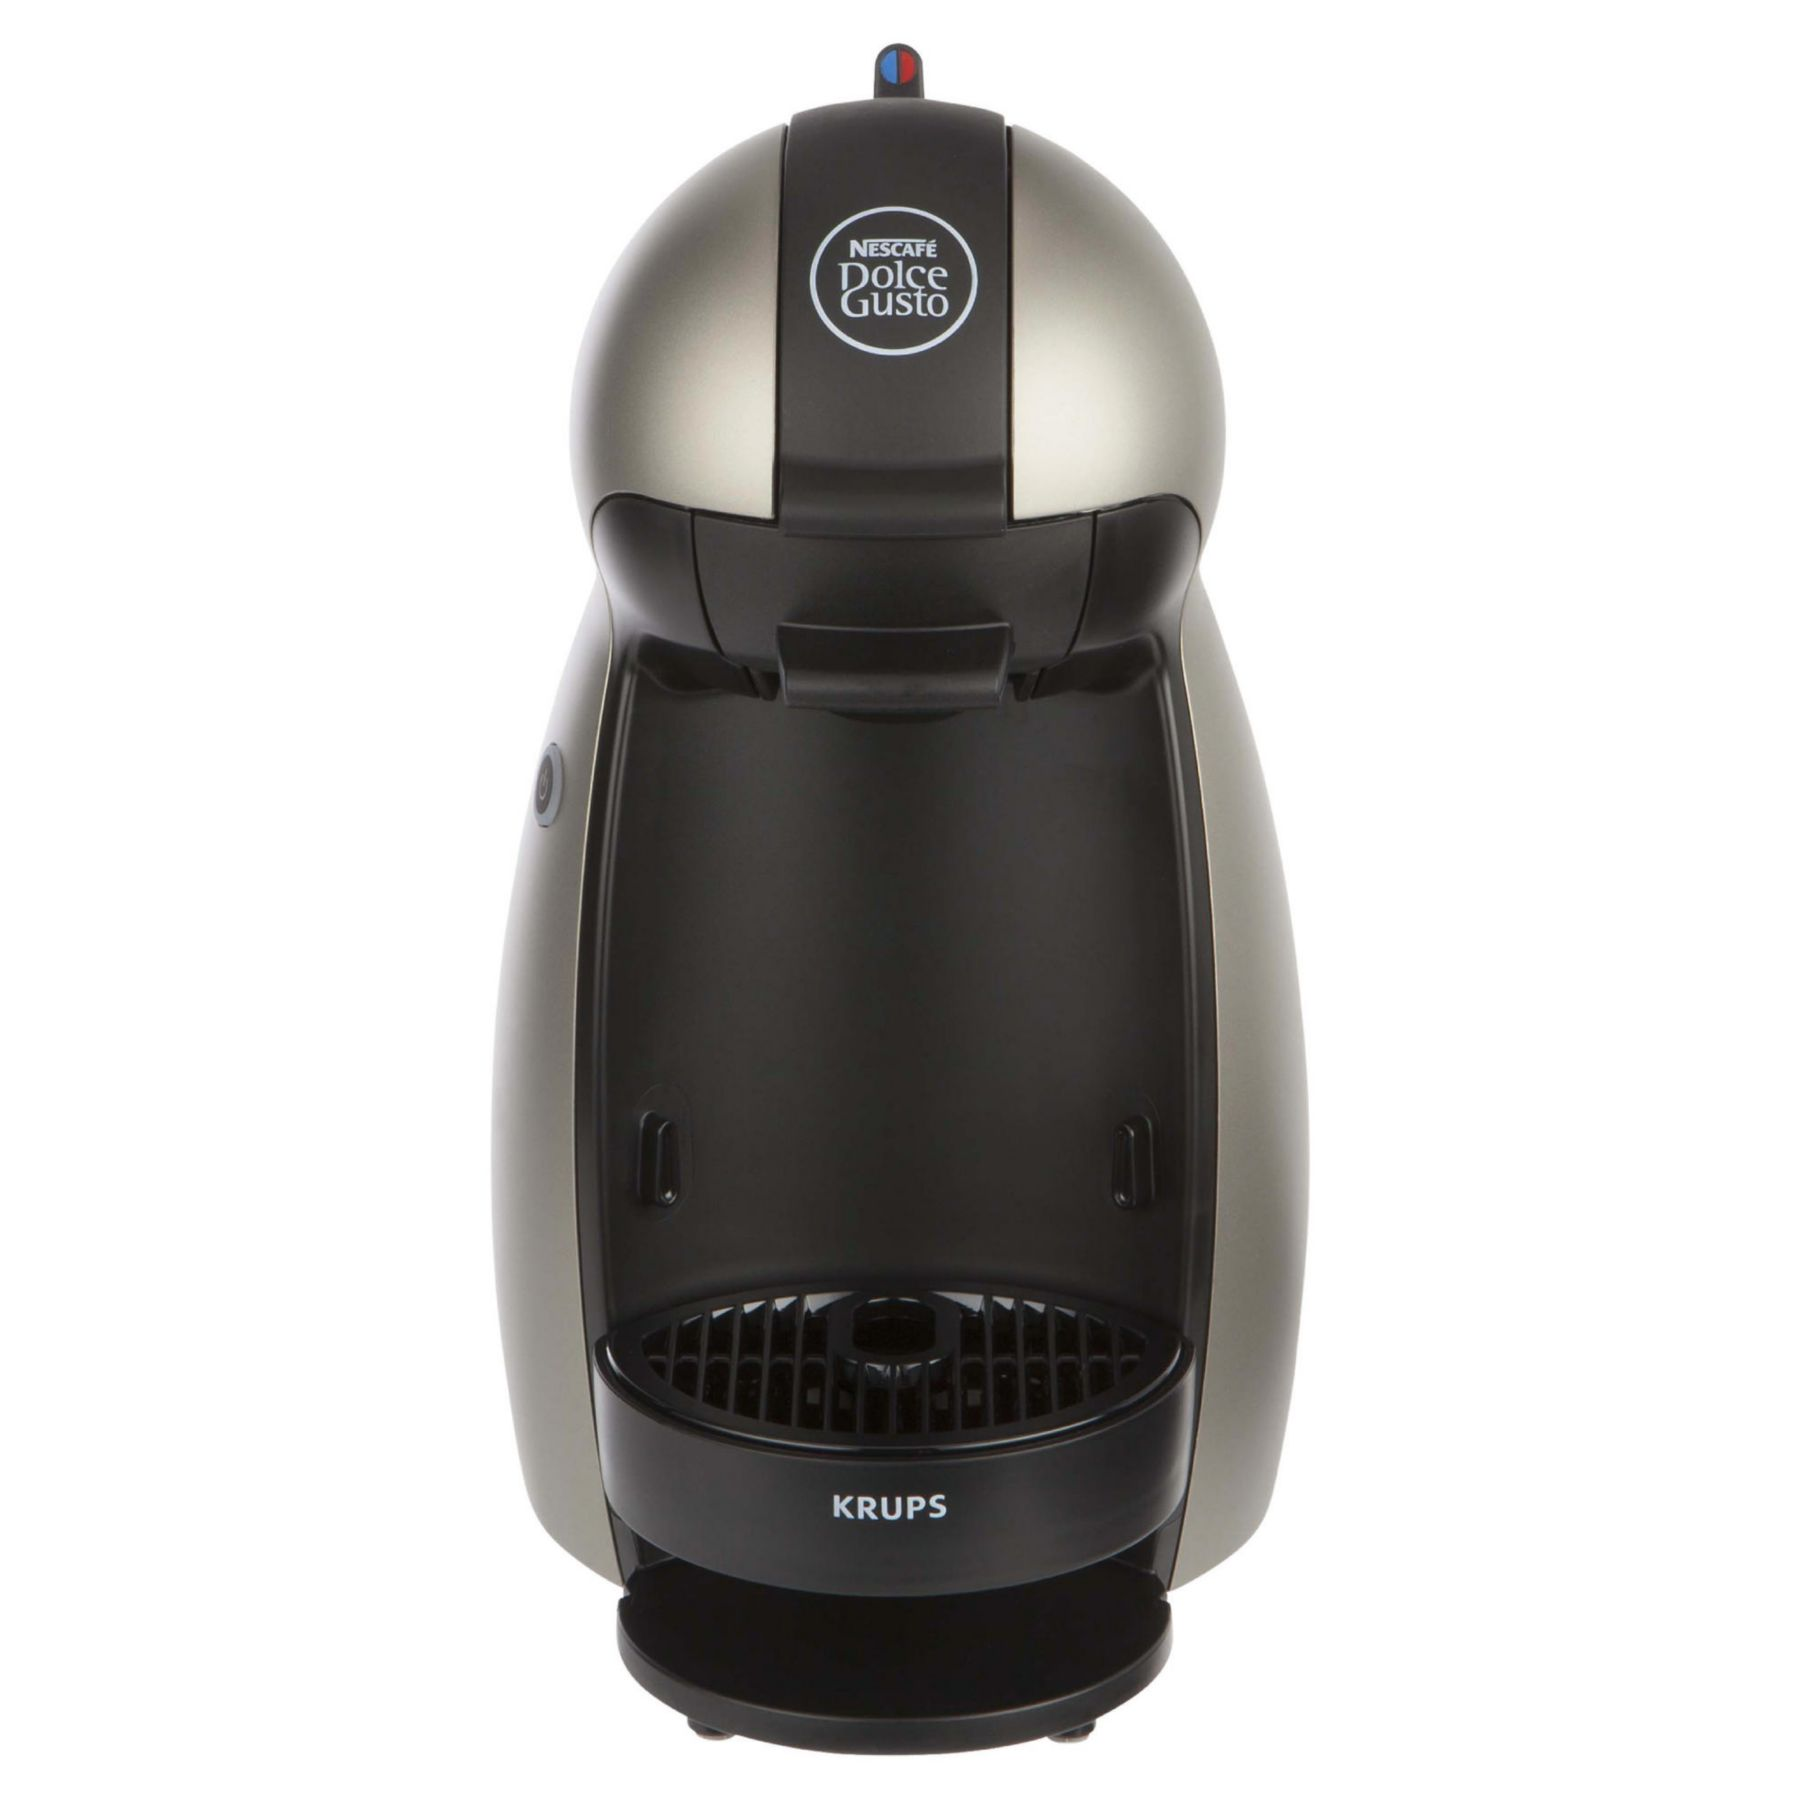 krups kp100940 capacity 6l nescafe dolce gusto piccolo beverage coffee titanium ebay. Black Bedroom Furniture Sets. Home Design Ideas